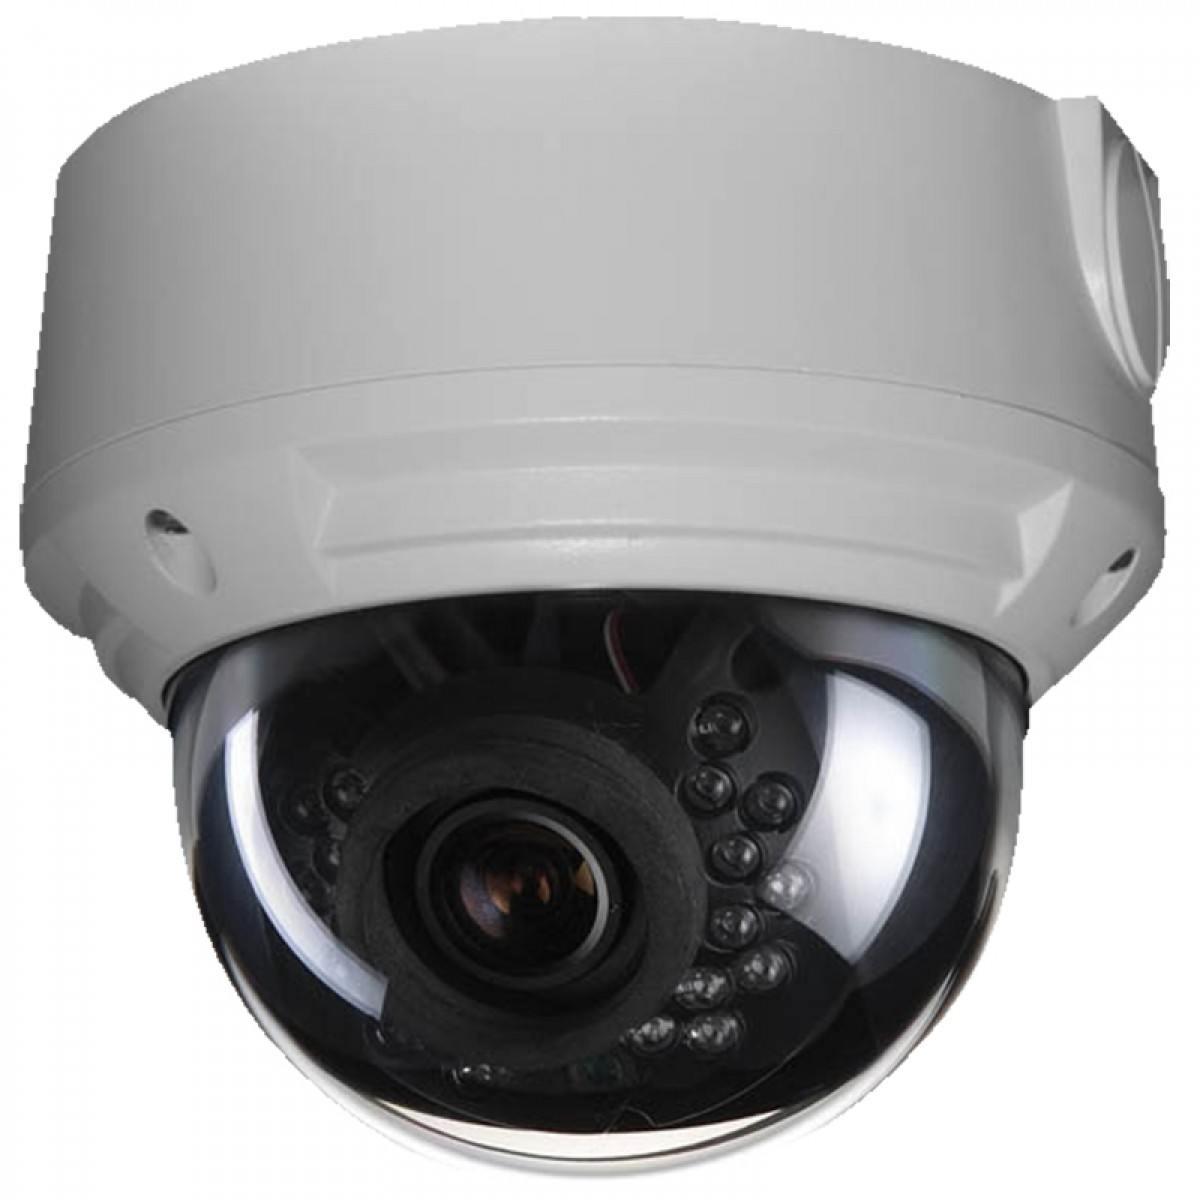 2mp ir vandal dome ip camera with wide dynamic range. Black Bedroom Furniture Sets. Home Design Ideas